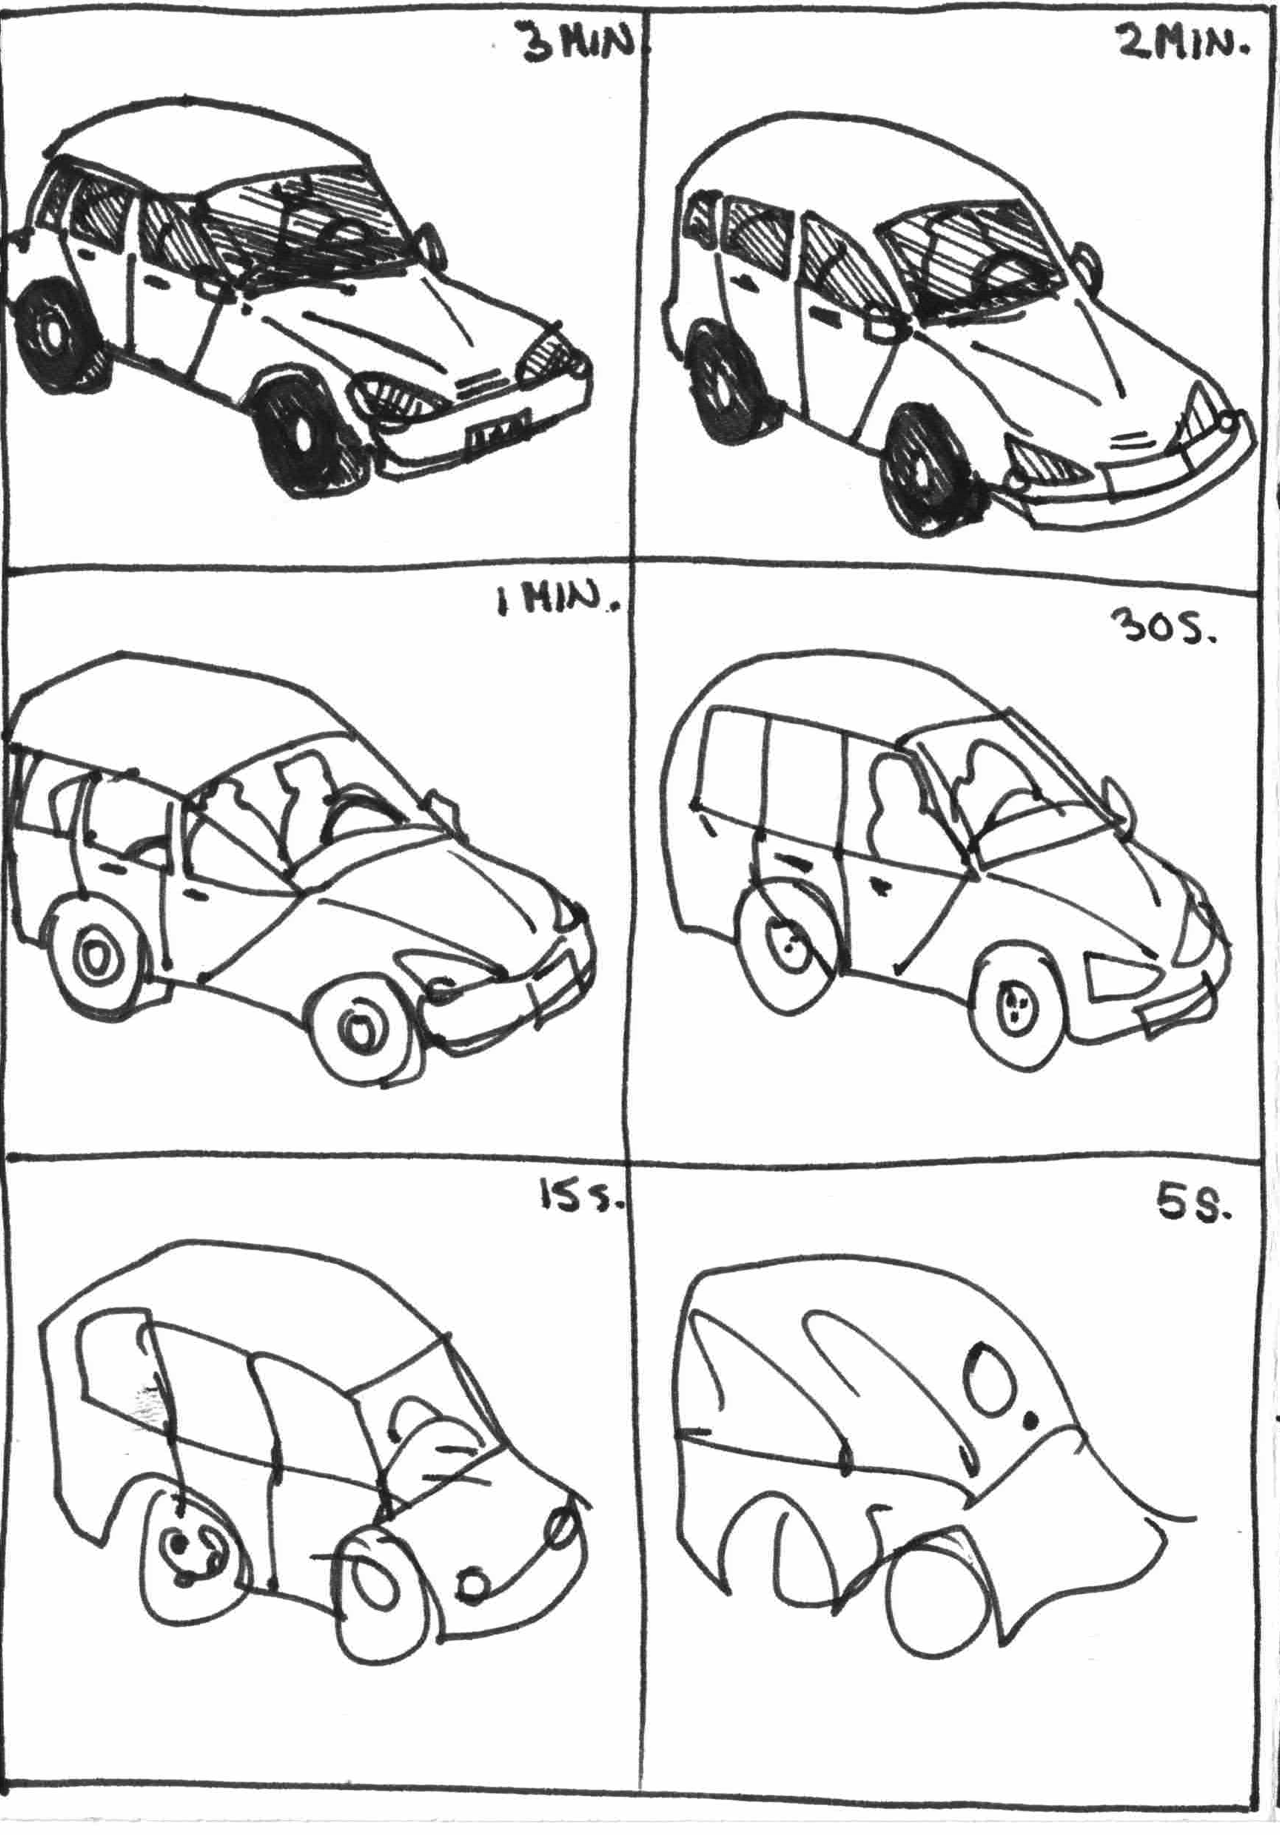 6 drawings of a car